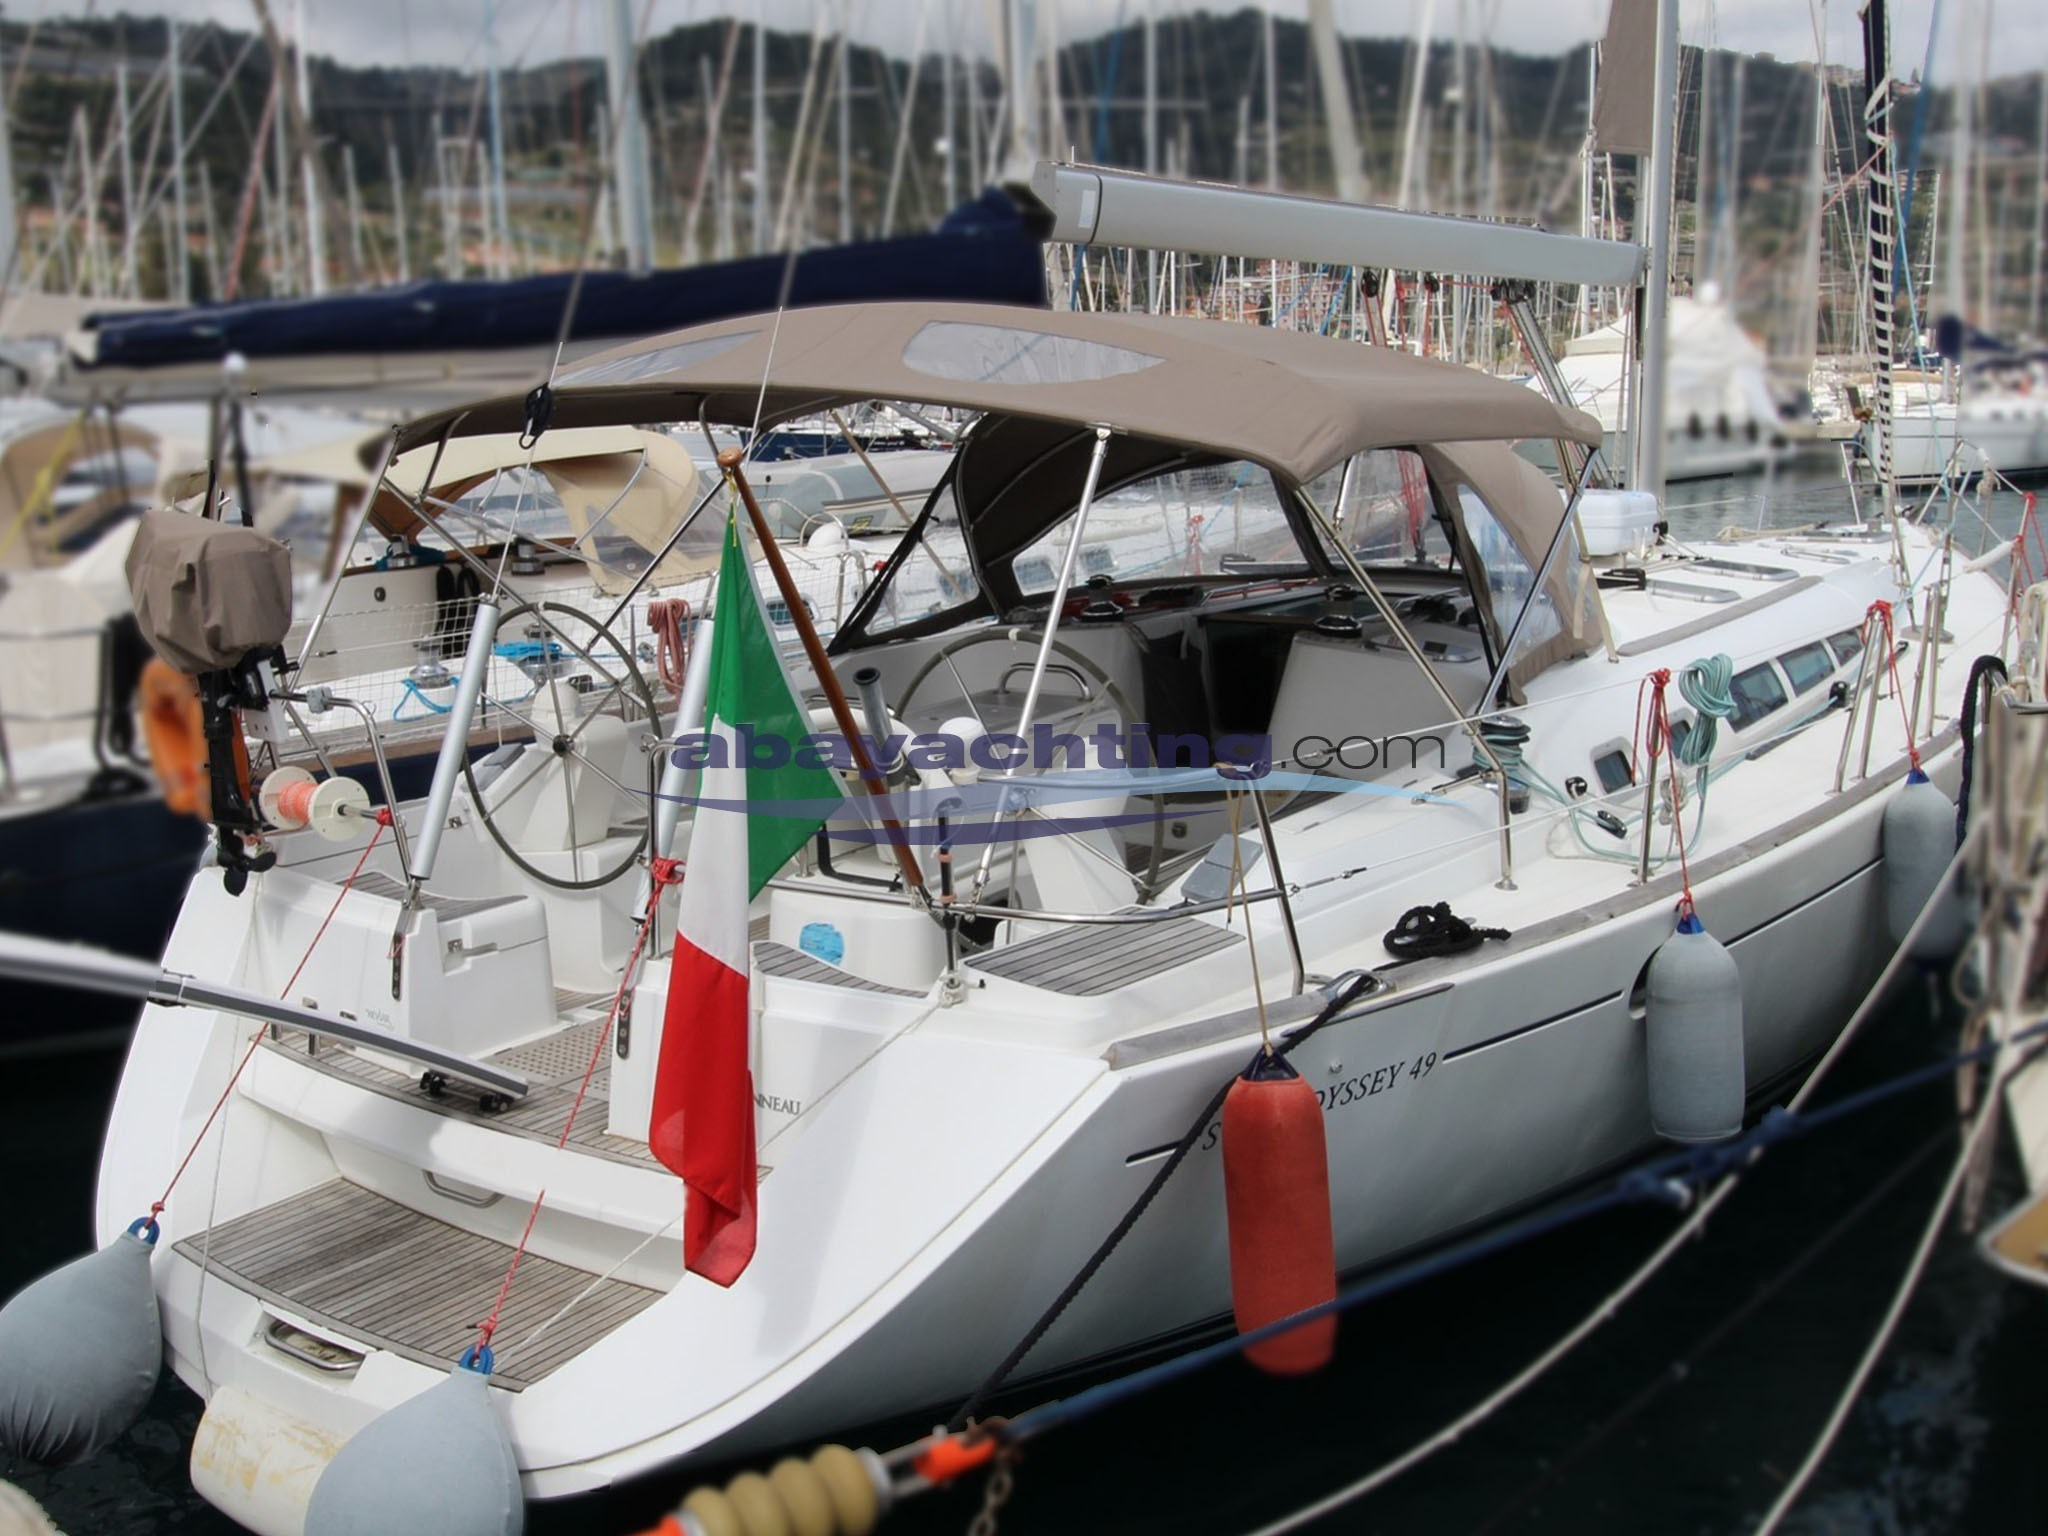 New price for Jeanneau Sun Odyssey 49, 2005